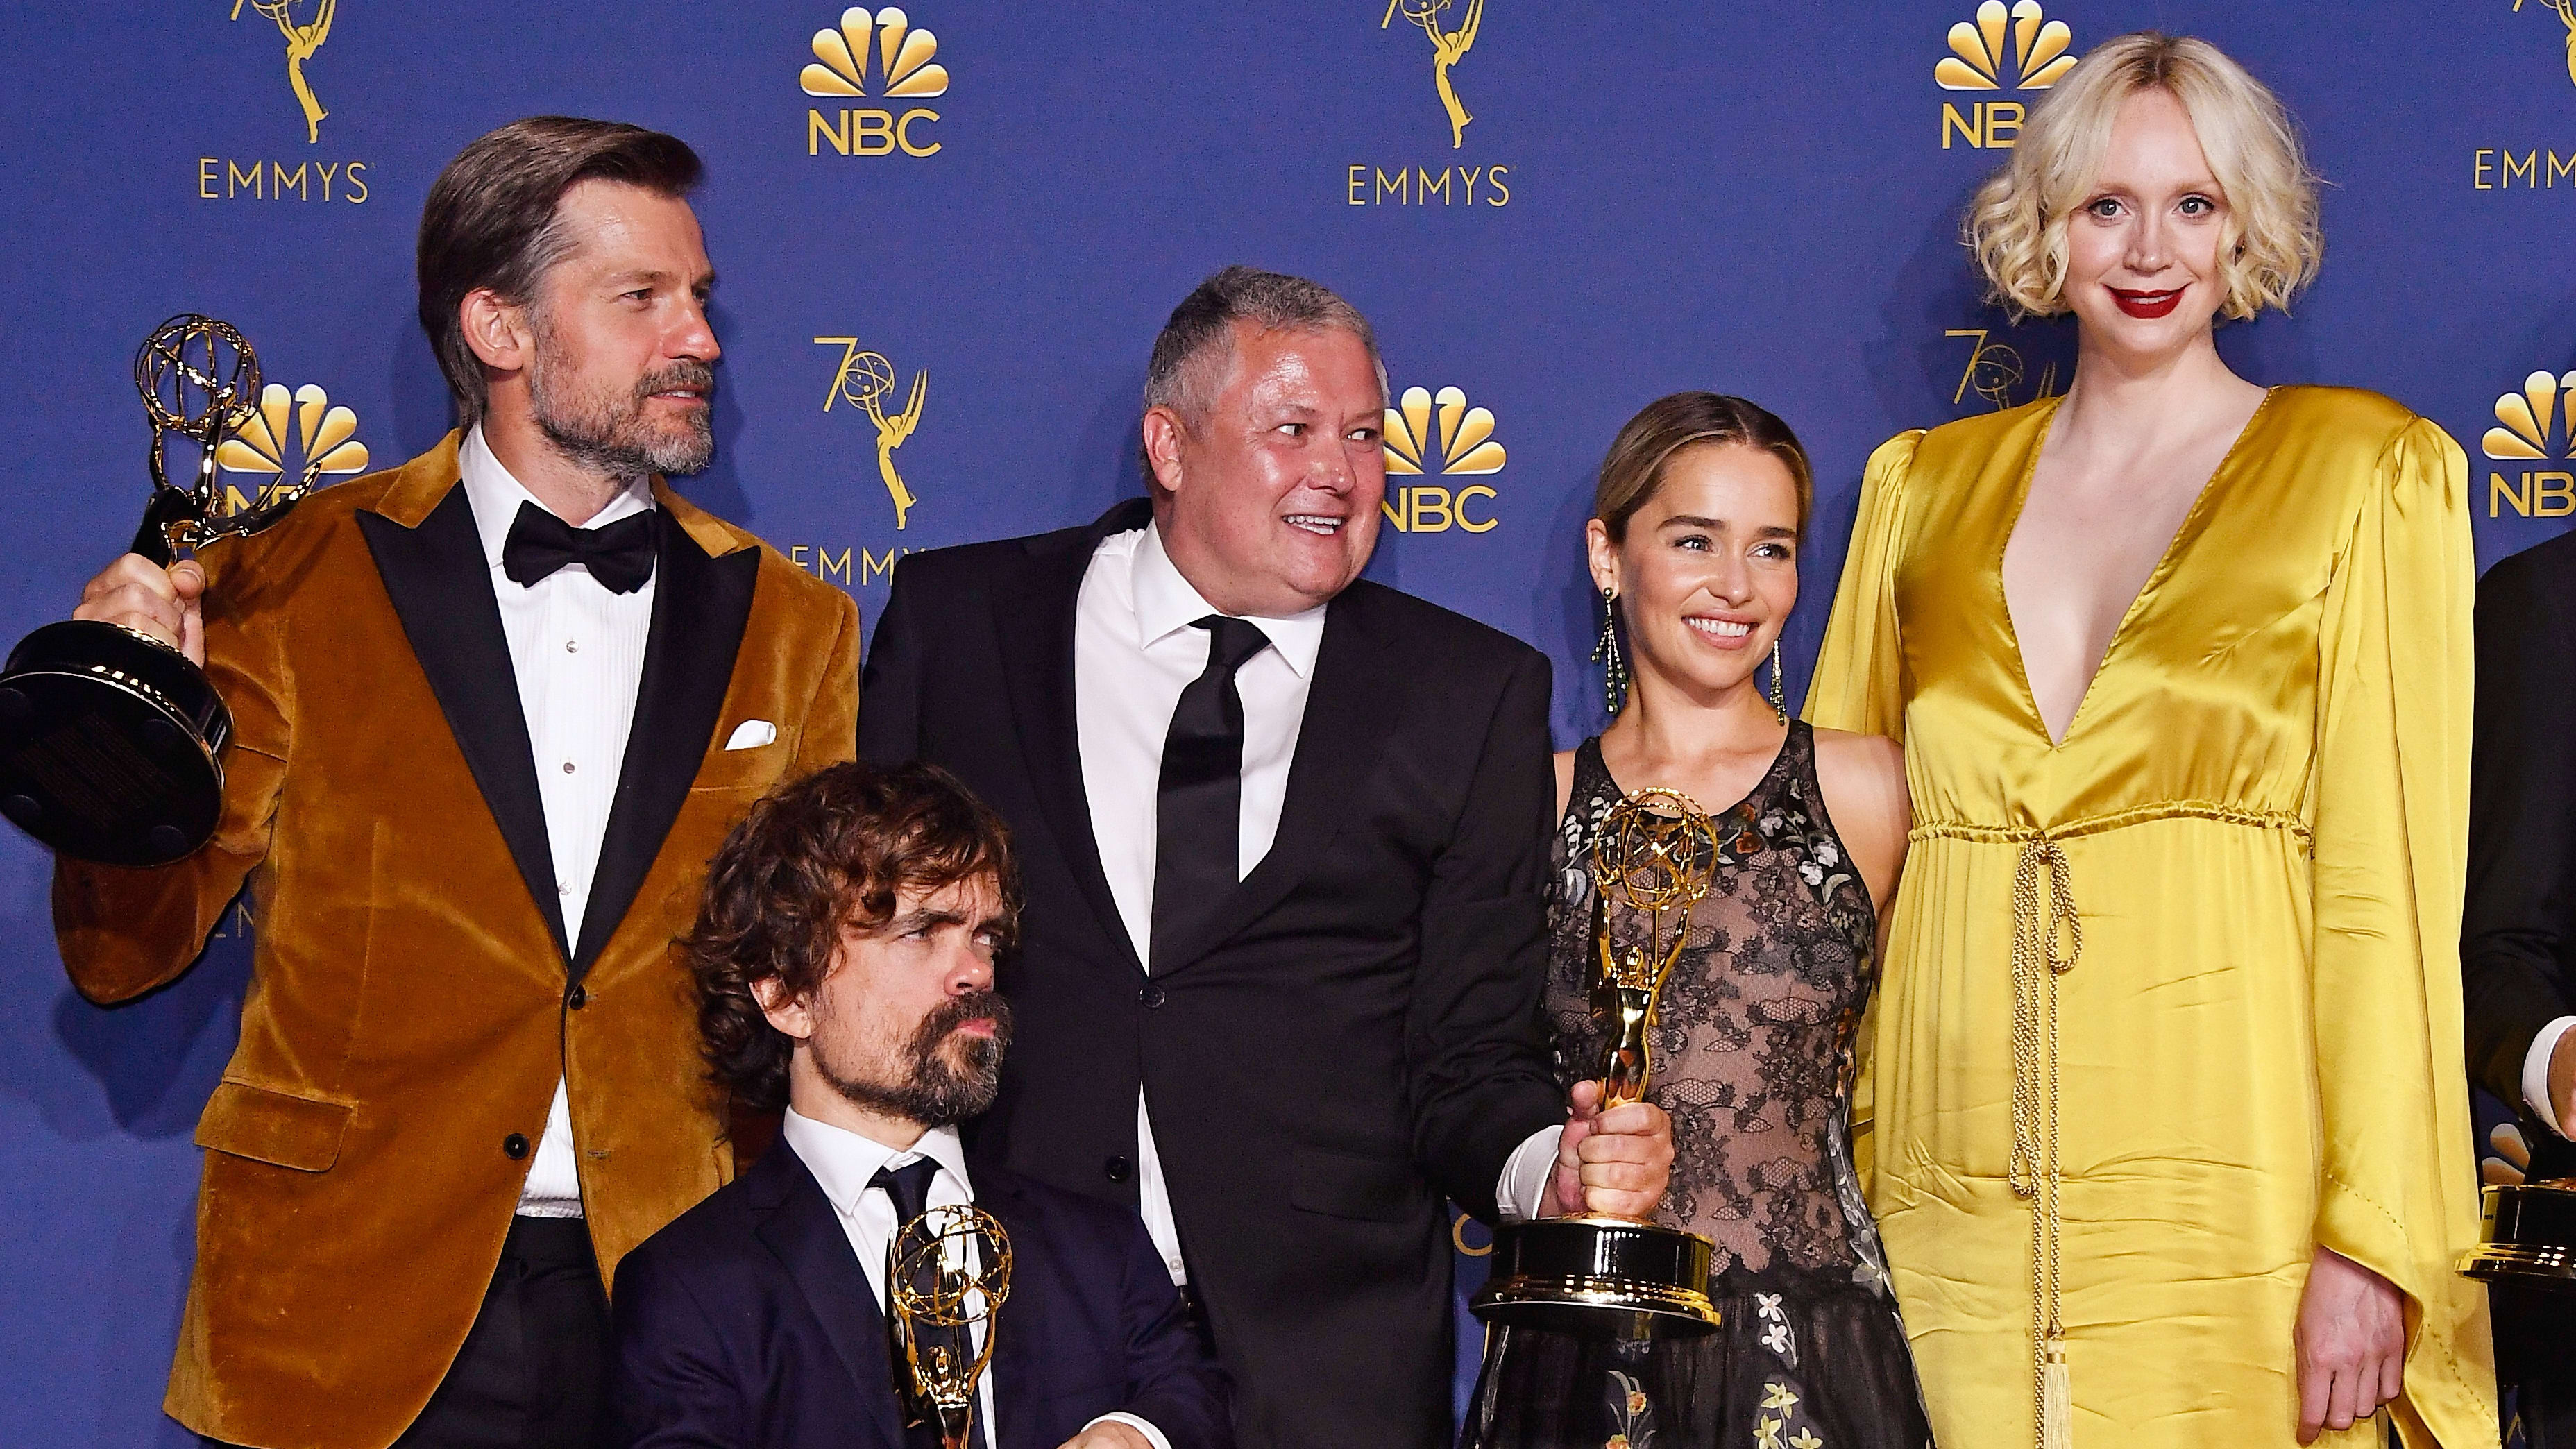 LOS ANGELES, CA - SEPTEMBER 17:  (L-R) Outstanding Drama Series winners Nikolaj Coster-Waldau , Peter Dinklage, Conleth Hill, Emilia Clarke, and Gwendoline Christie pose in the press room during the 70th Emmy Awards at Microsoft Theater on September 17, 2018 in Los Angeles, California.  (Photo by Frazer Harrison/Getty Images)